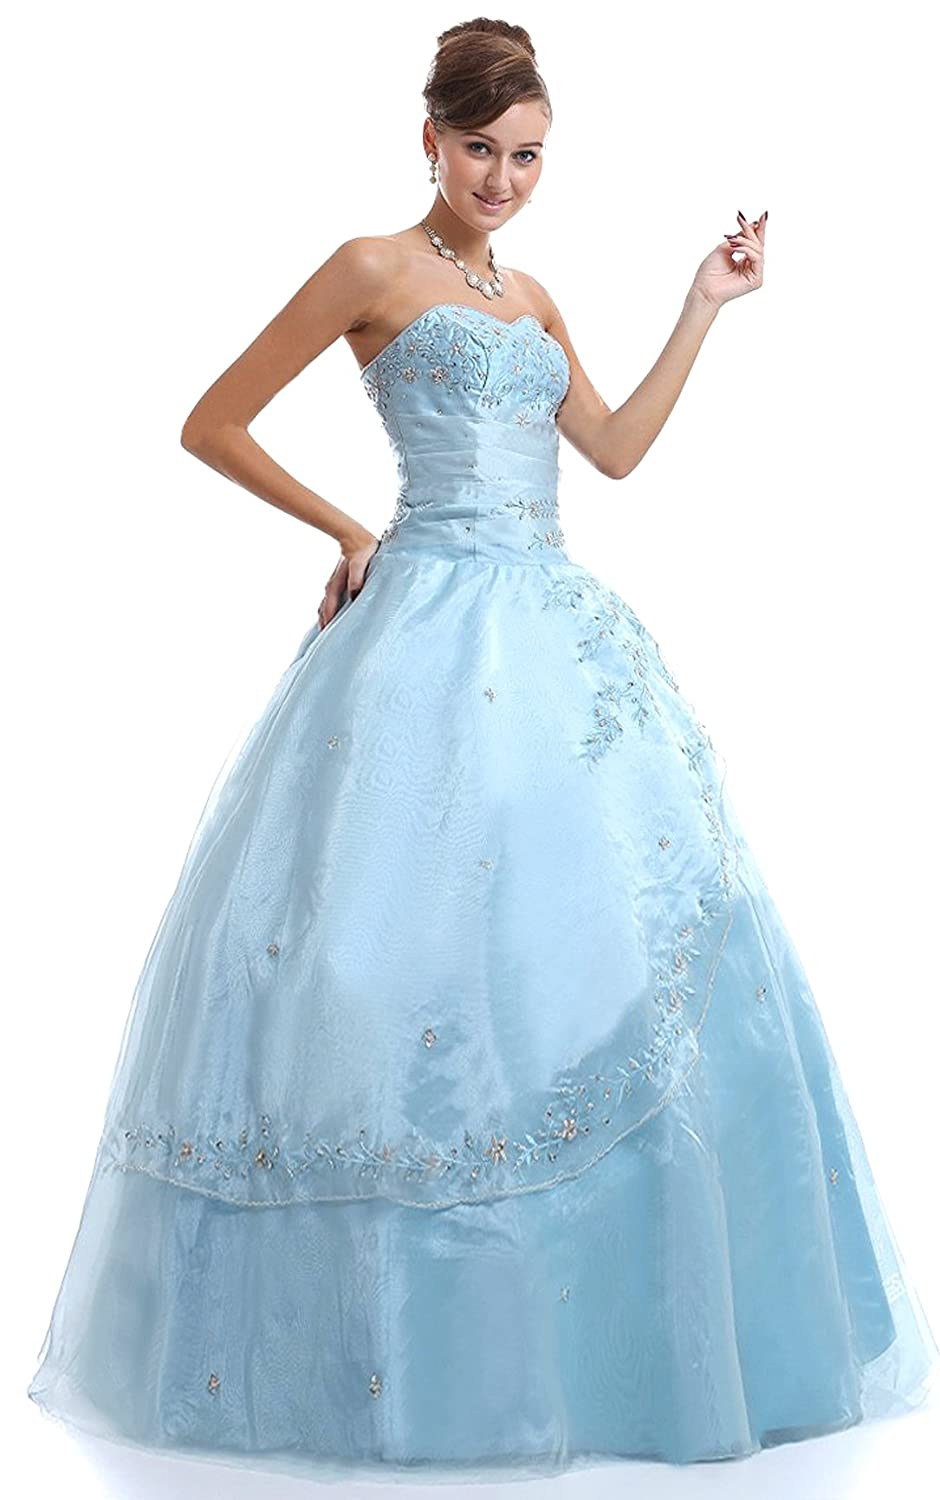 Prom Dress Style Quiz Quizzes For Prom 2014 Fashion Amazon Com Faironly M25 Light Blue Formal